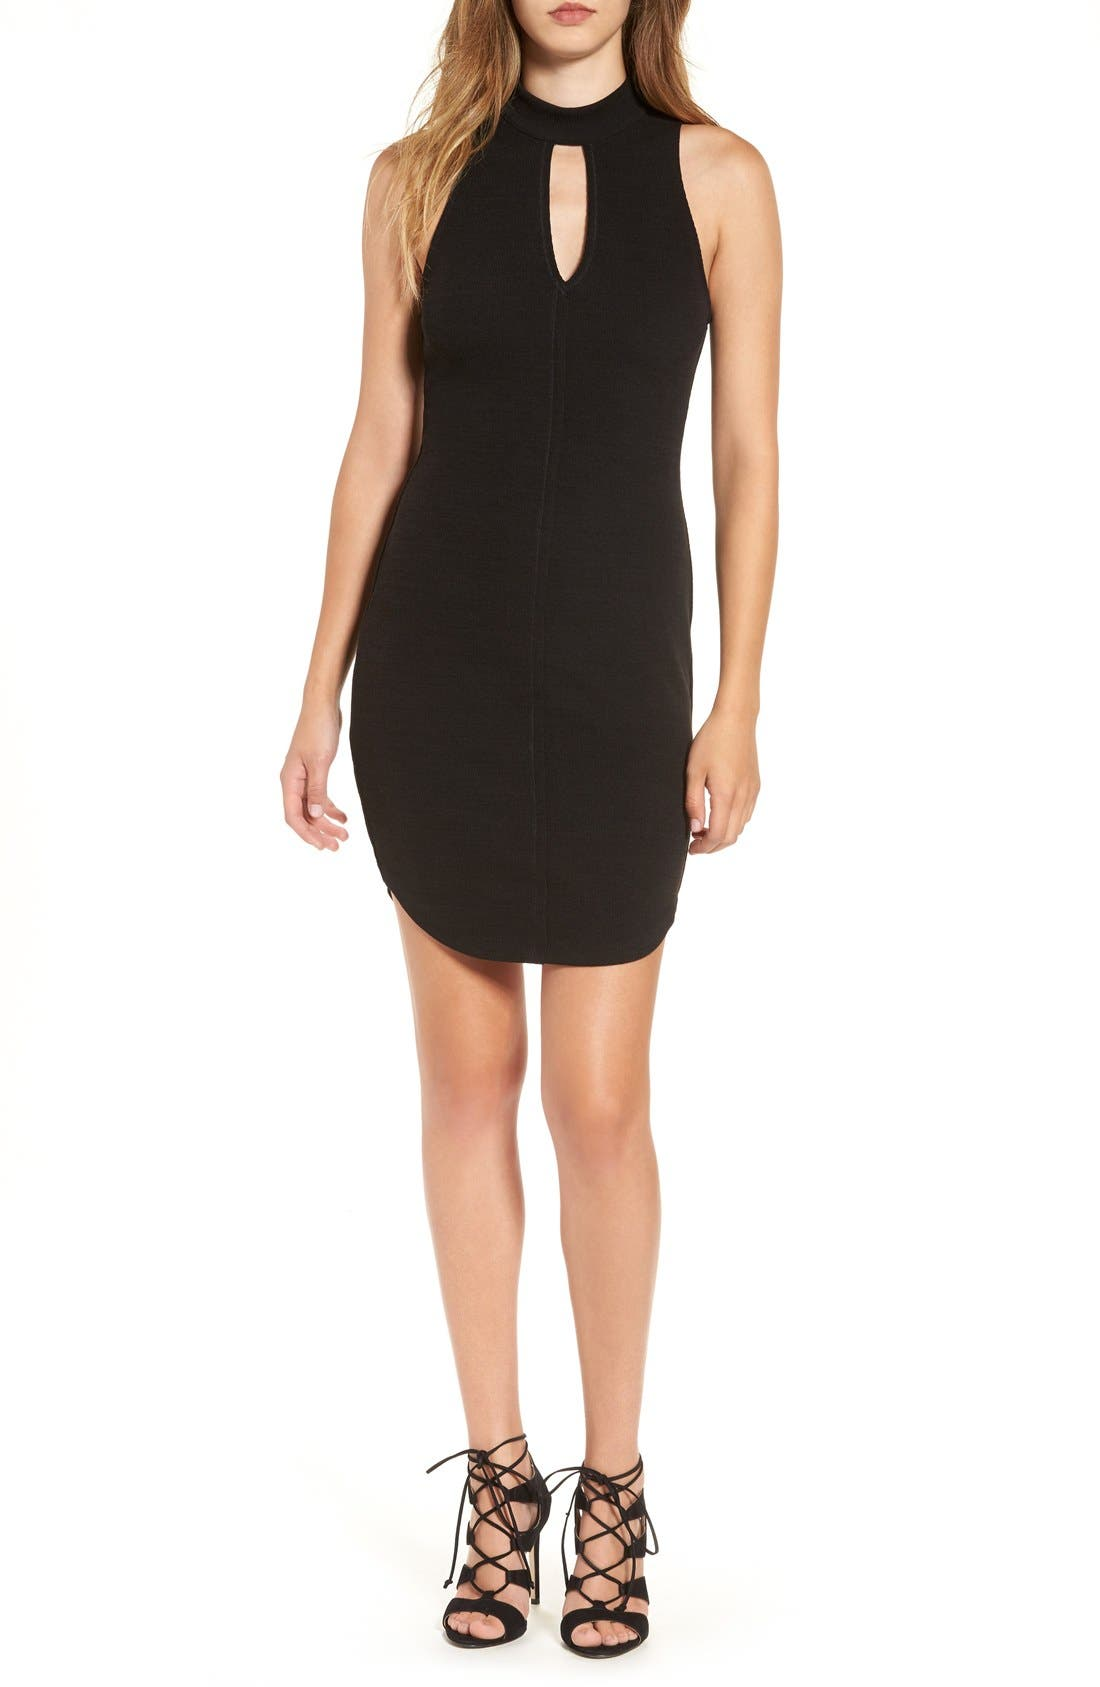 Alternate Image 1 Selected - ASTR Cutout Knit Body-Con Dress